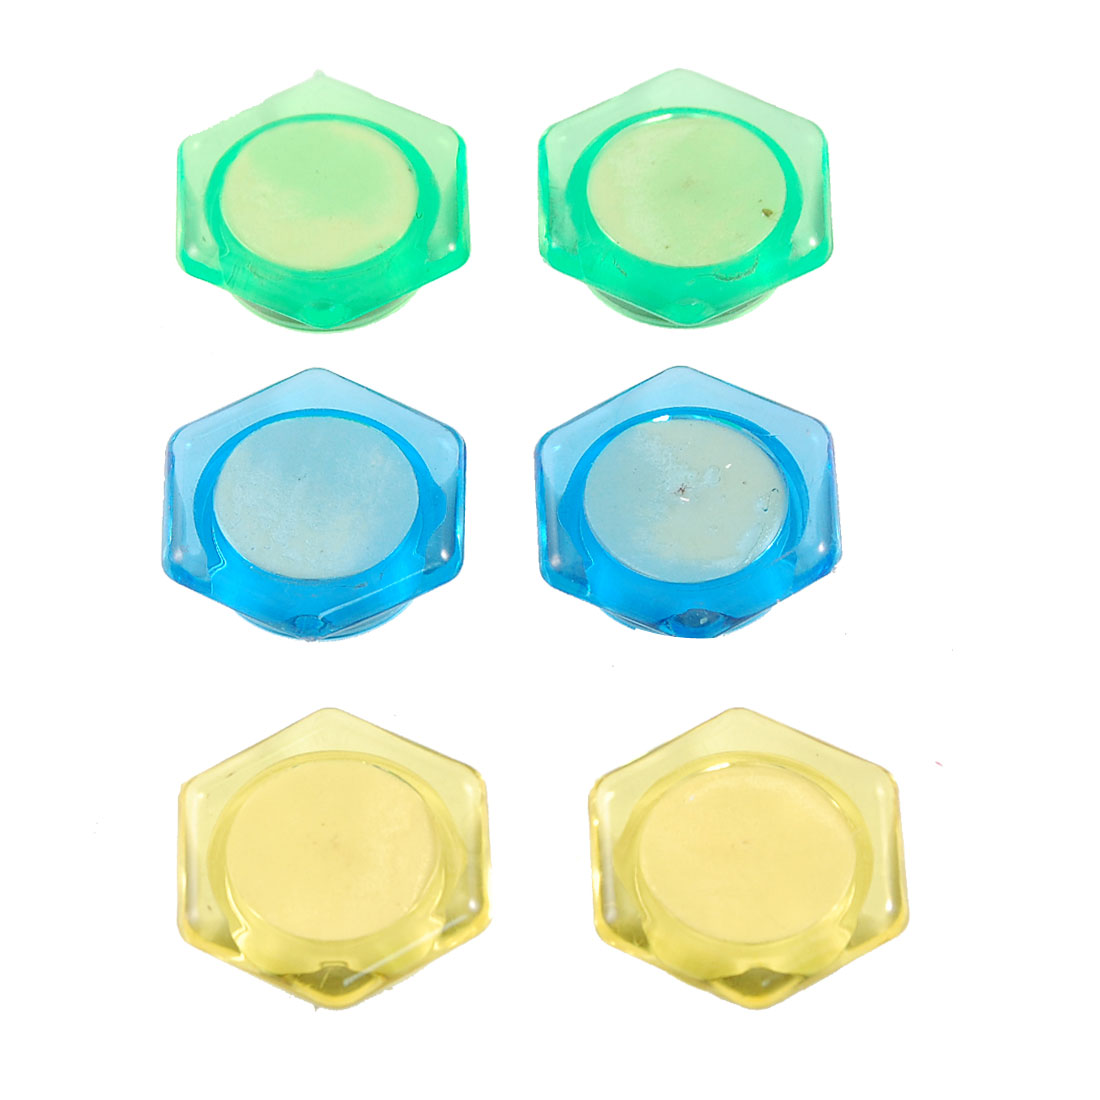 6 Pcs Yellow Green Blue Hex Fridge Refrigerator Magnetic Magnet